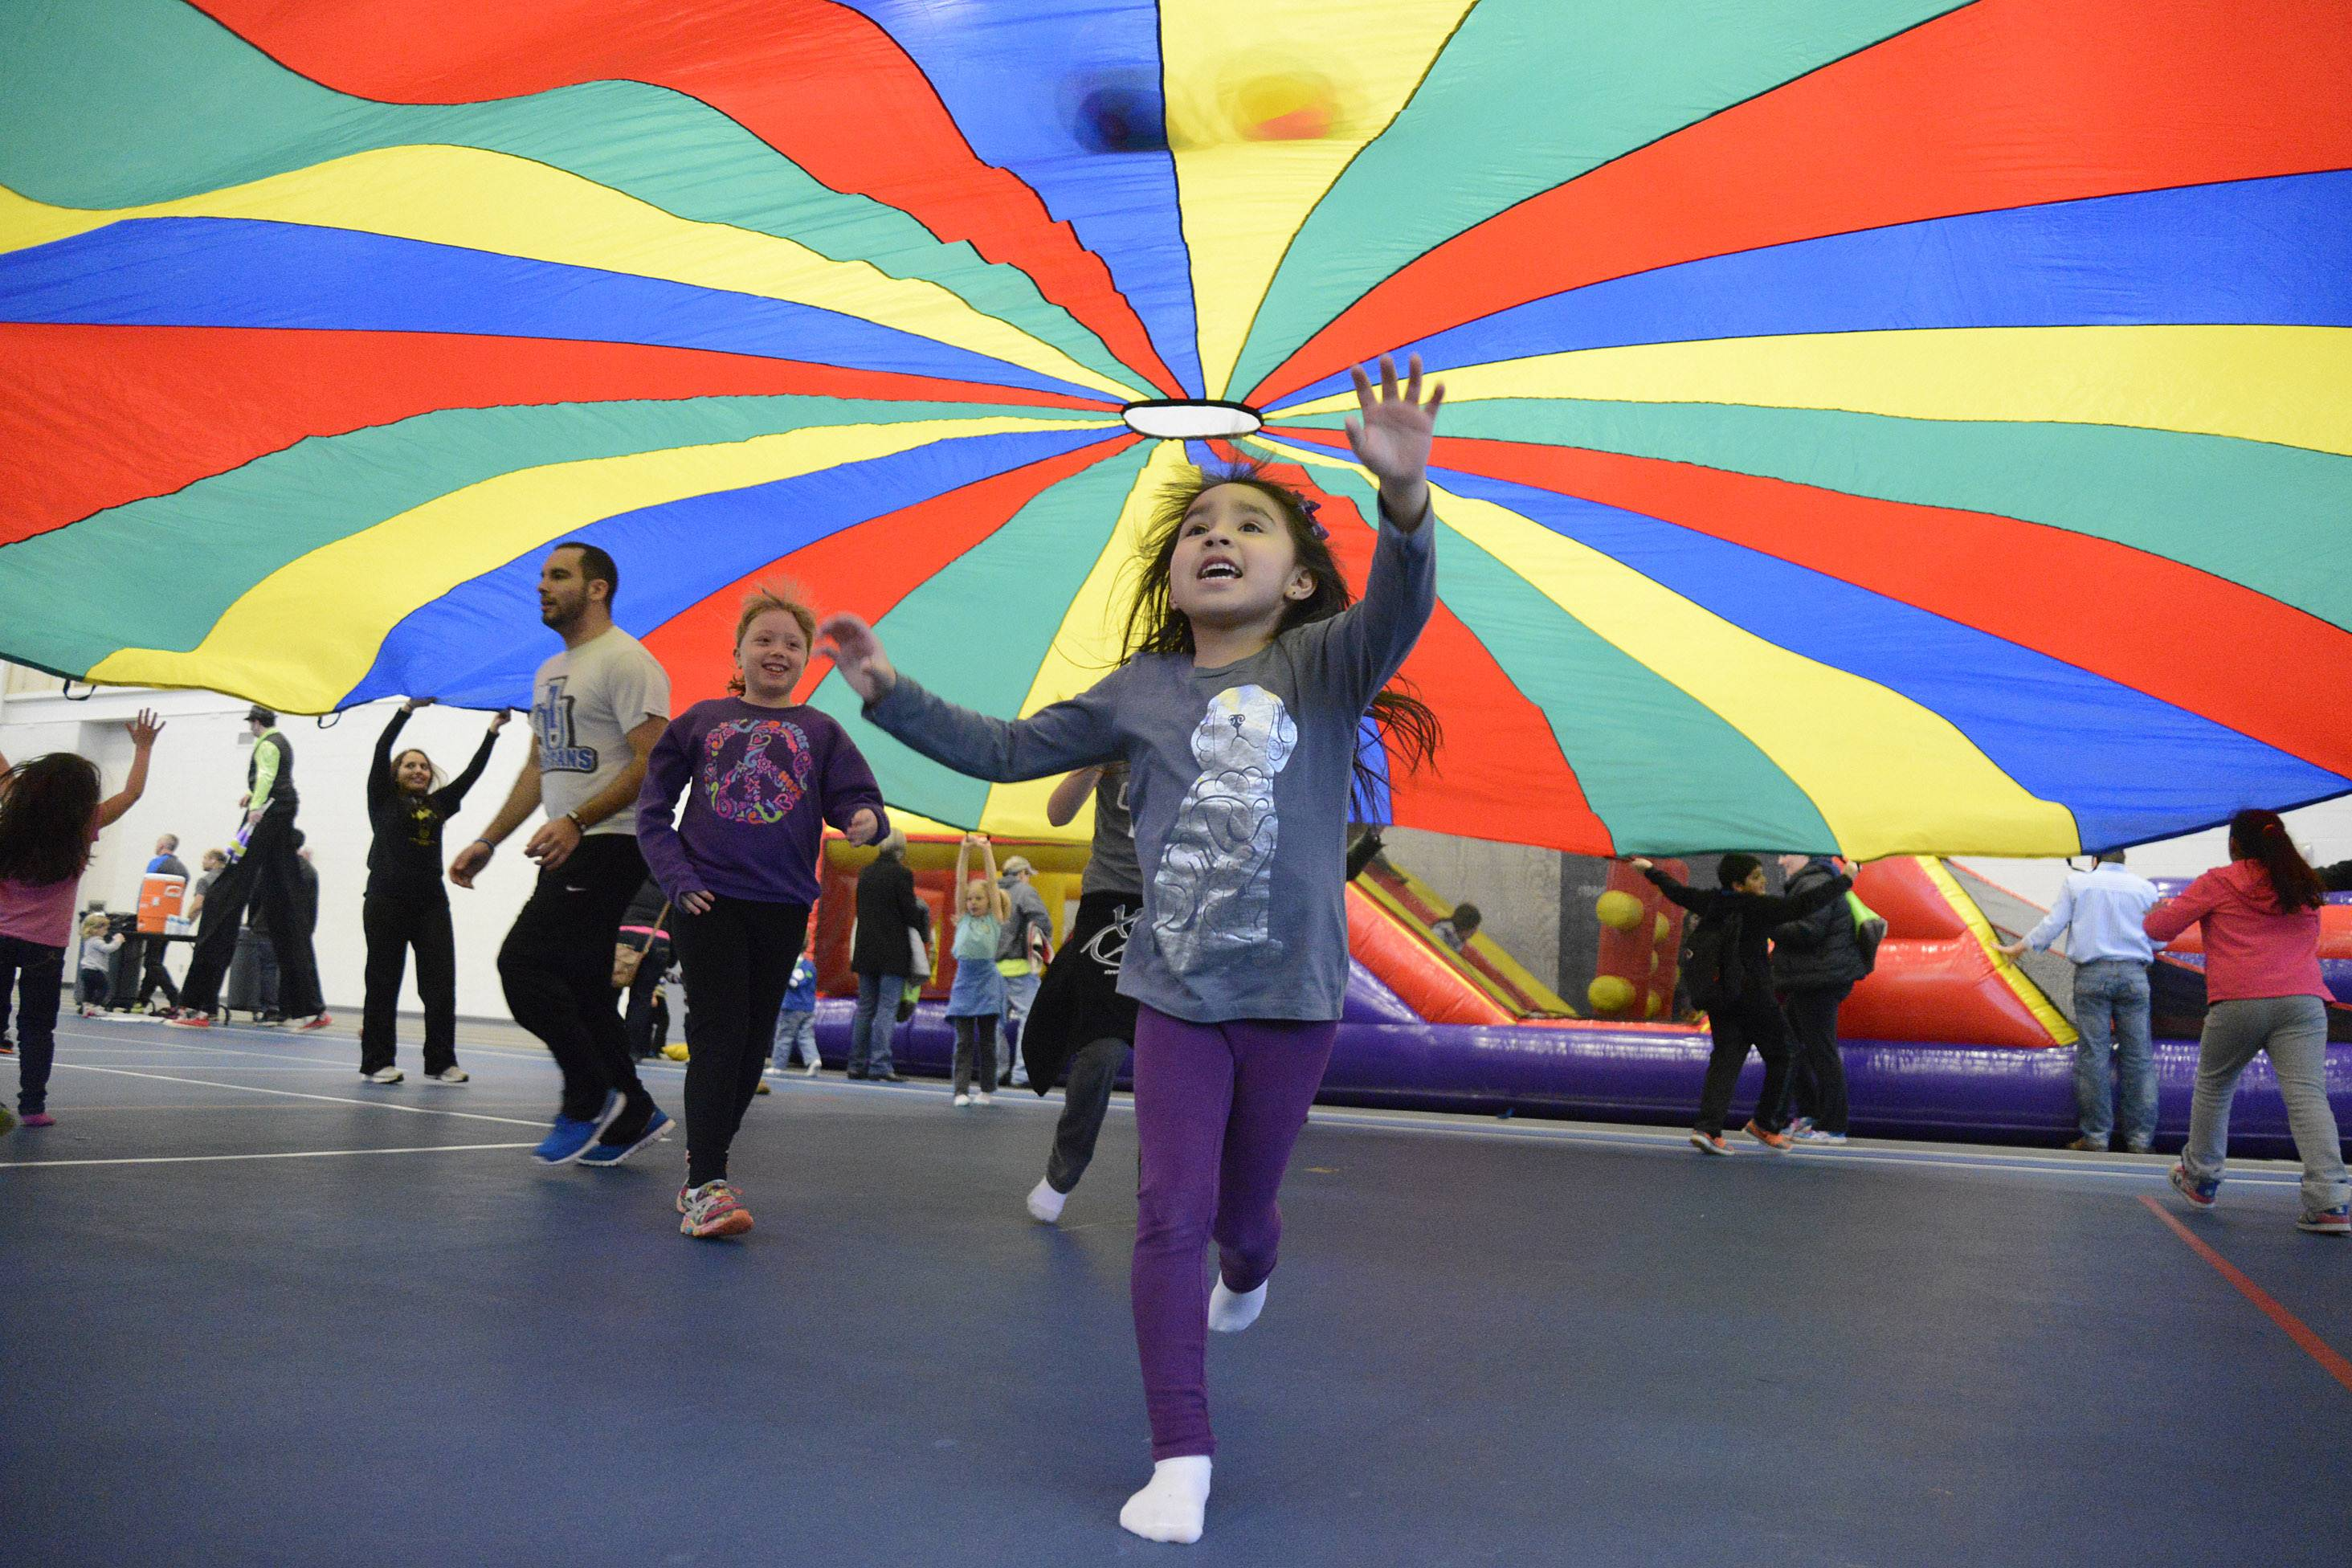 Alexa Bejarano, 5, of Aurora runs to a yellow slice of color under the parachute activity Saturday at the annual Fitness Fun Fair for Kids at the Vaughn Athletic Center in Aurora. The Bejarano family are members of the center and have been coming to the Fun Fair for the past three years.